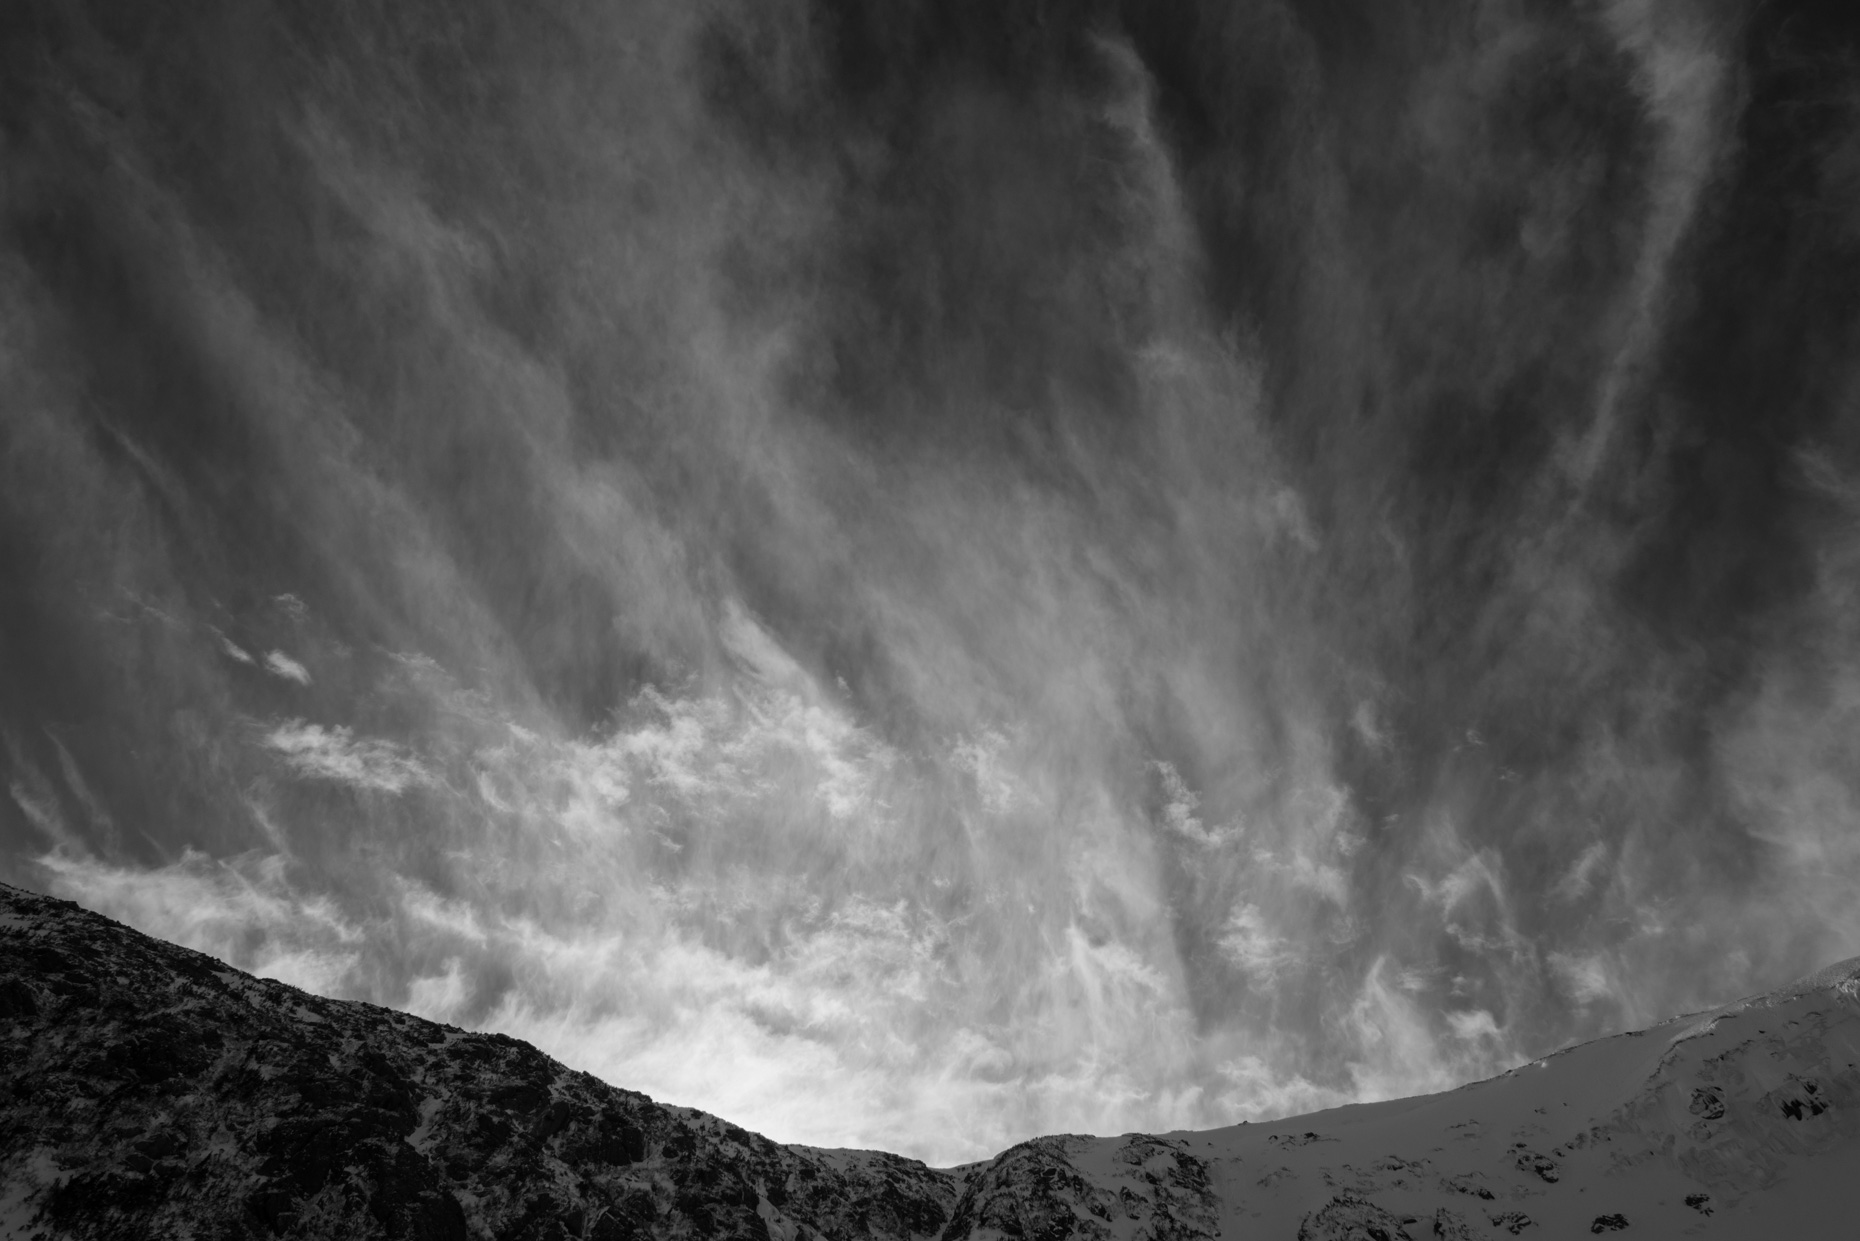 Cirrus clouds blowing over Tuckerman Ravine